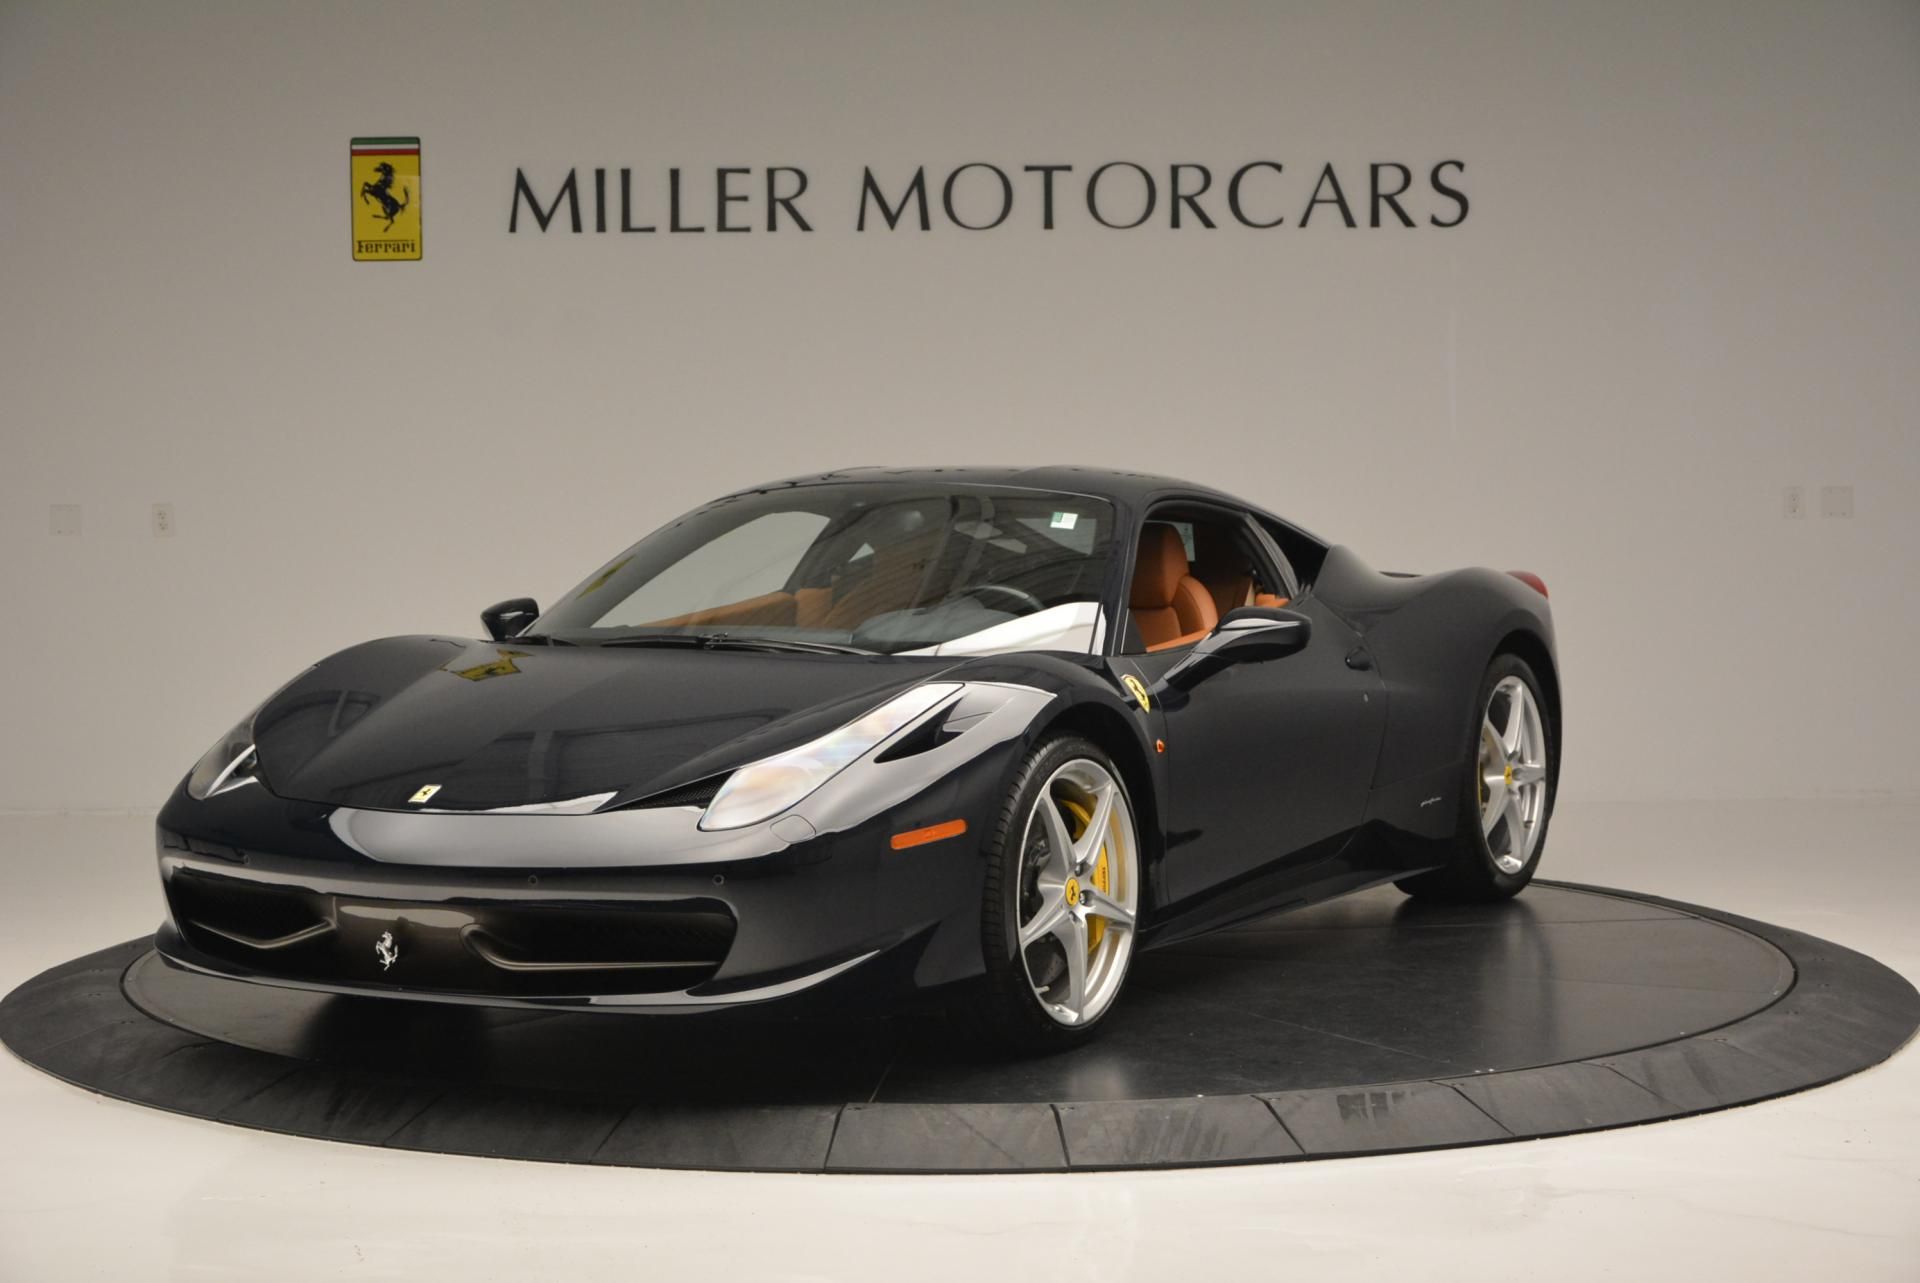 Used 2010 Ferrari 458 Italia for sale Sold at Bugatti of Greenwich in Greenwich CT 06830 1